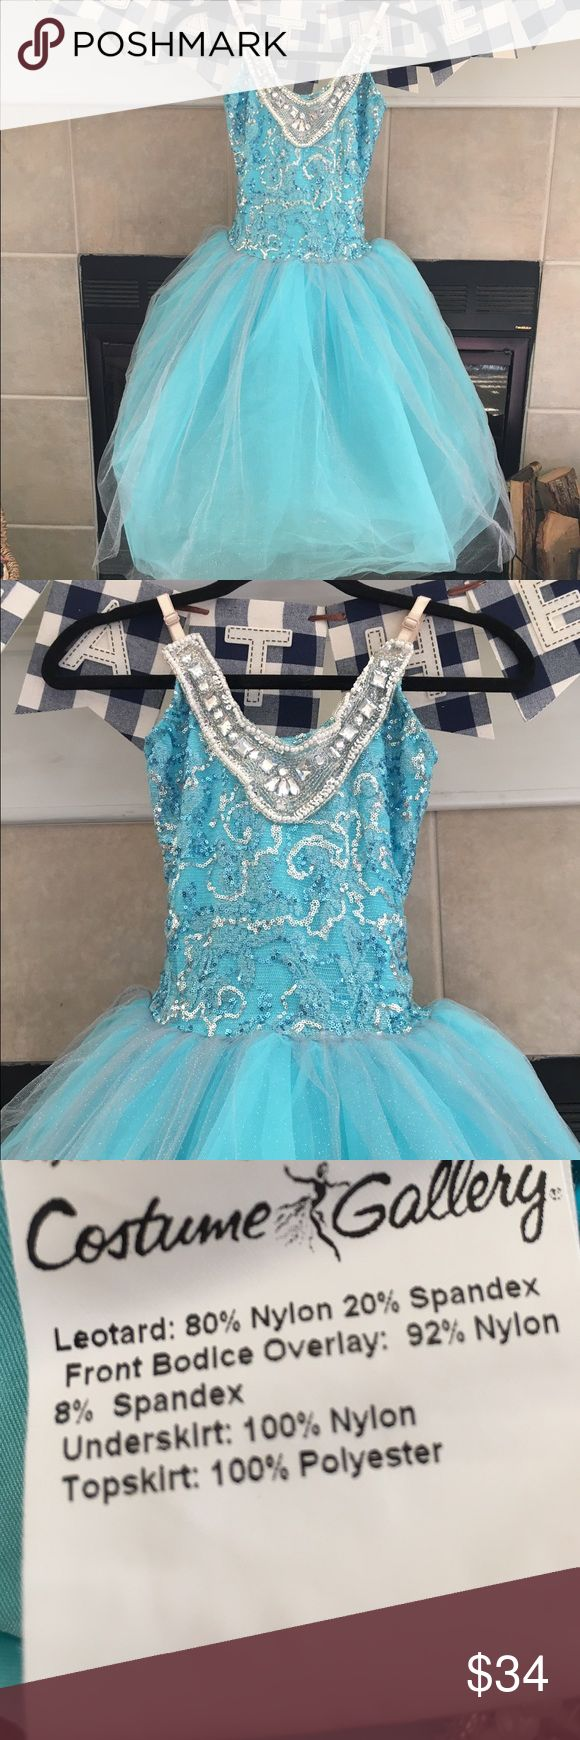 Gorgeous Costume Ice Princess (Think Elsa) 🎈LOWEST🎈Pre💙 Gorgeous (Think Elsa) Ice Princess Costume. This is not a standard, inexpensive costume.  💎This is a quality, high end dance costume perfect to double as a Halloween costume. No one will have one like it!!❄️❄️❄️❄️ ❌No known defects or stains. ❌No lowball offers.  ❌No trades. 👑This is completely beautiful with beadwork, adjustable straps, a hidden leotard and mounds of tulle!👸🏻Amazing opportunity for your princess!  ✨Ours is a non…